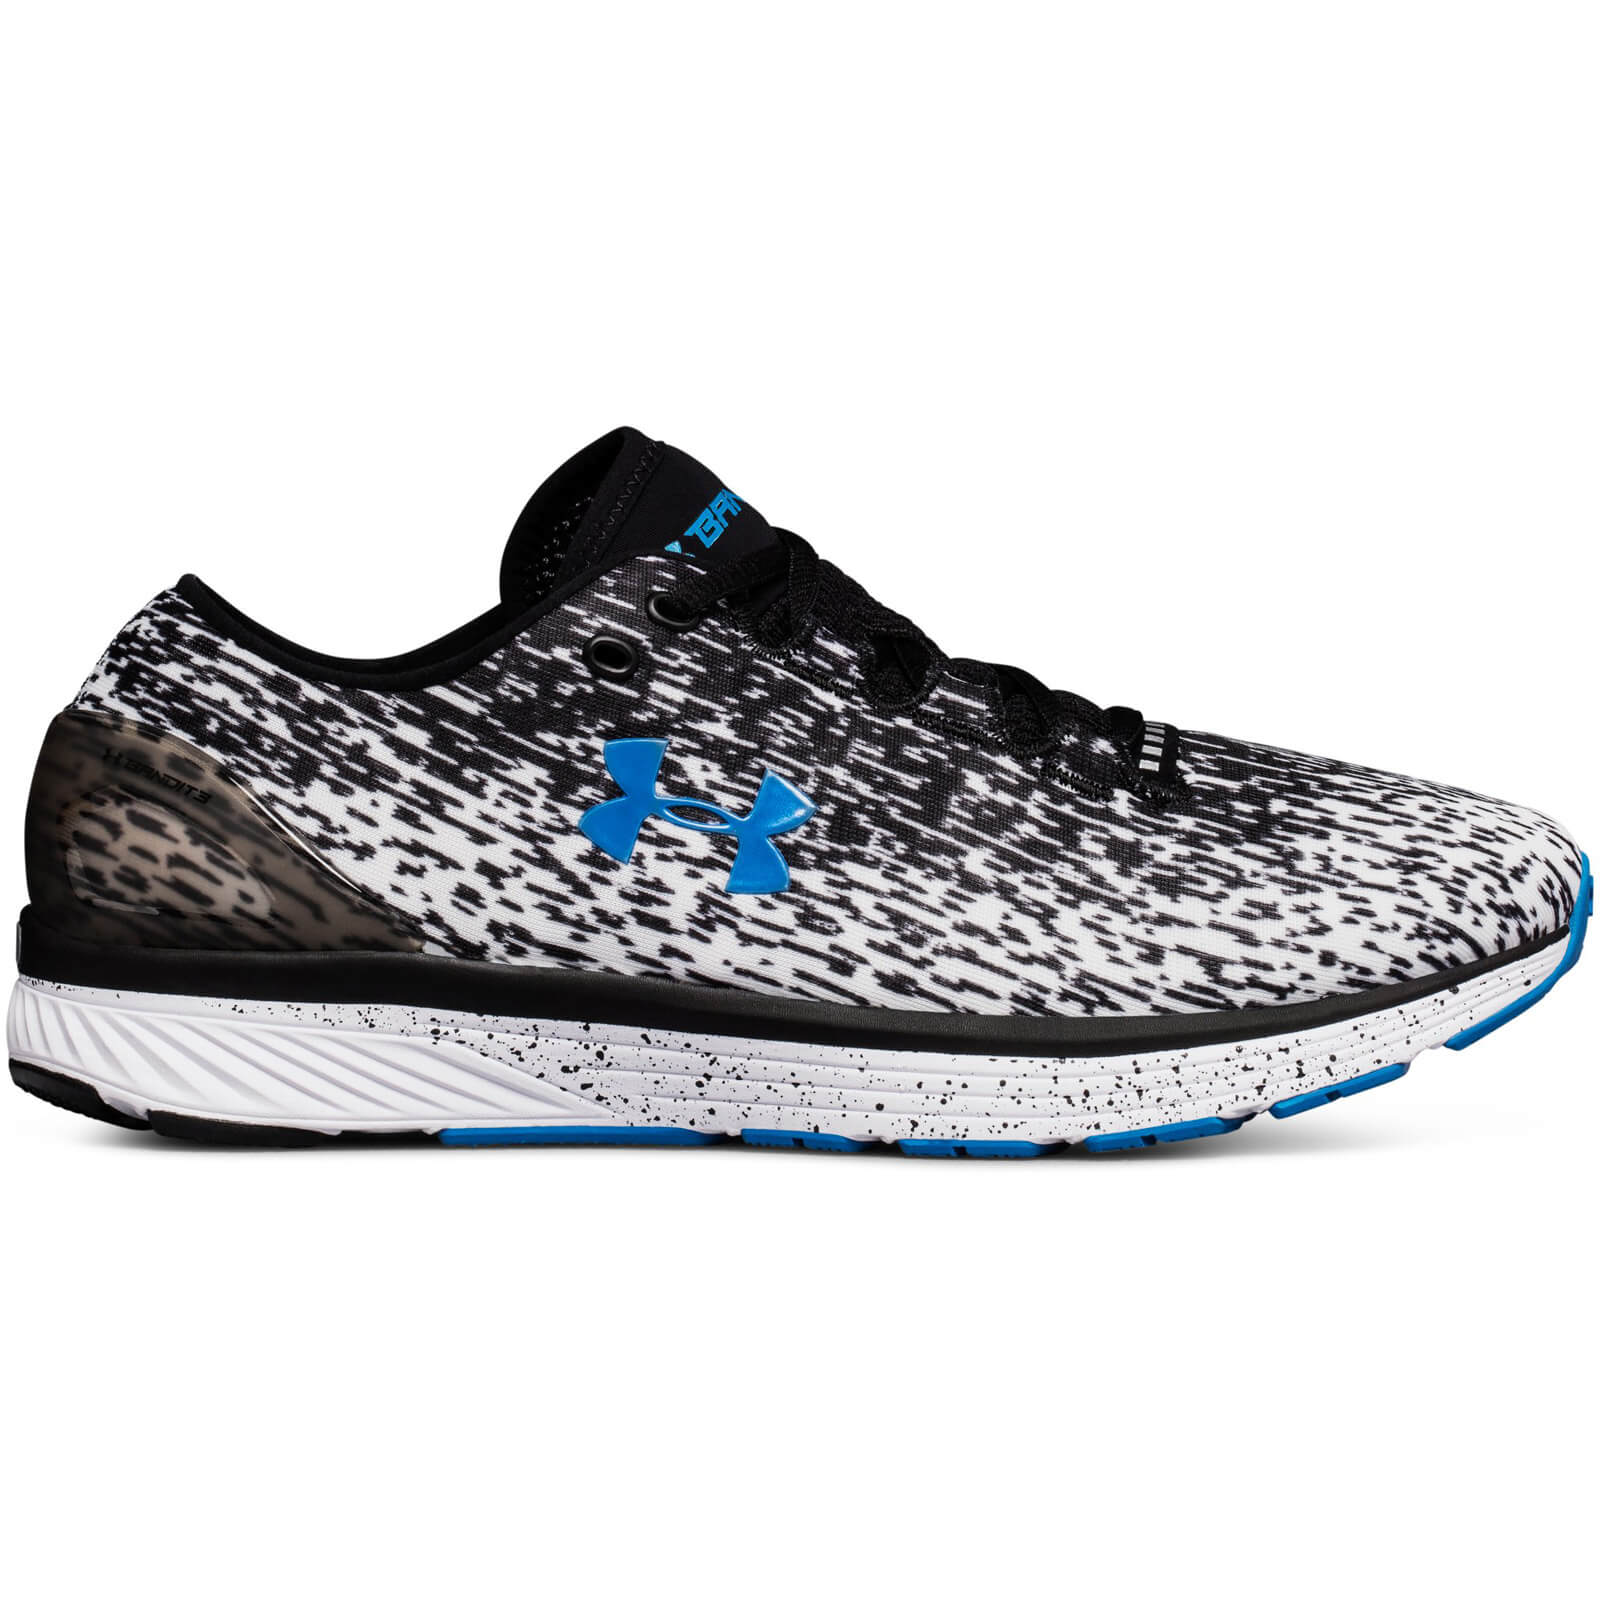 big sale 05a0d fc7ed Under Armour Men's Charged Bandit 3 Ombre Running Shoes - Black/White